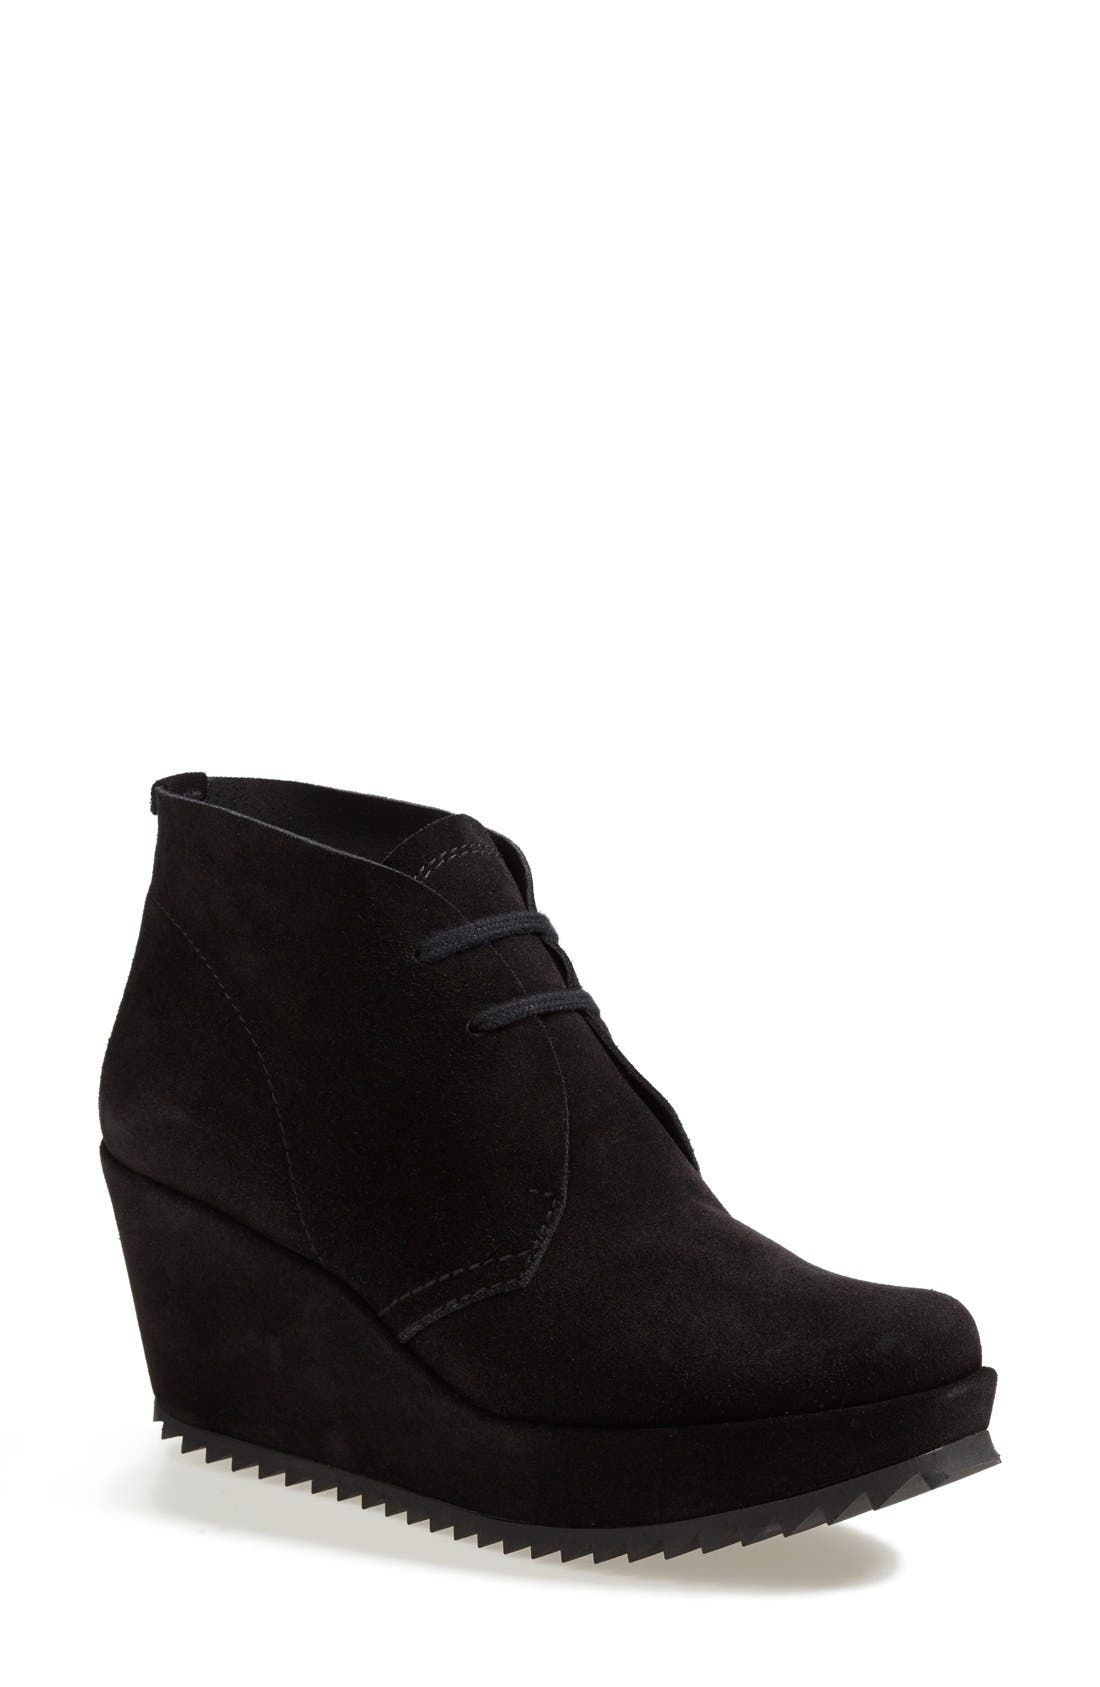 Alternate Image 1 Selected - Pedro Garcia 'Fulvia' Wedge Bootie (Women)